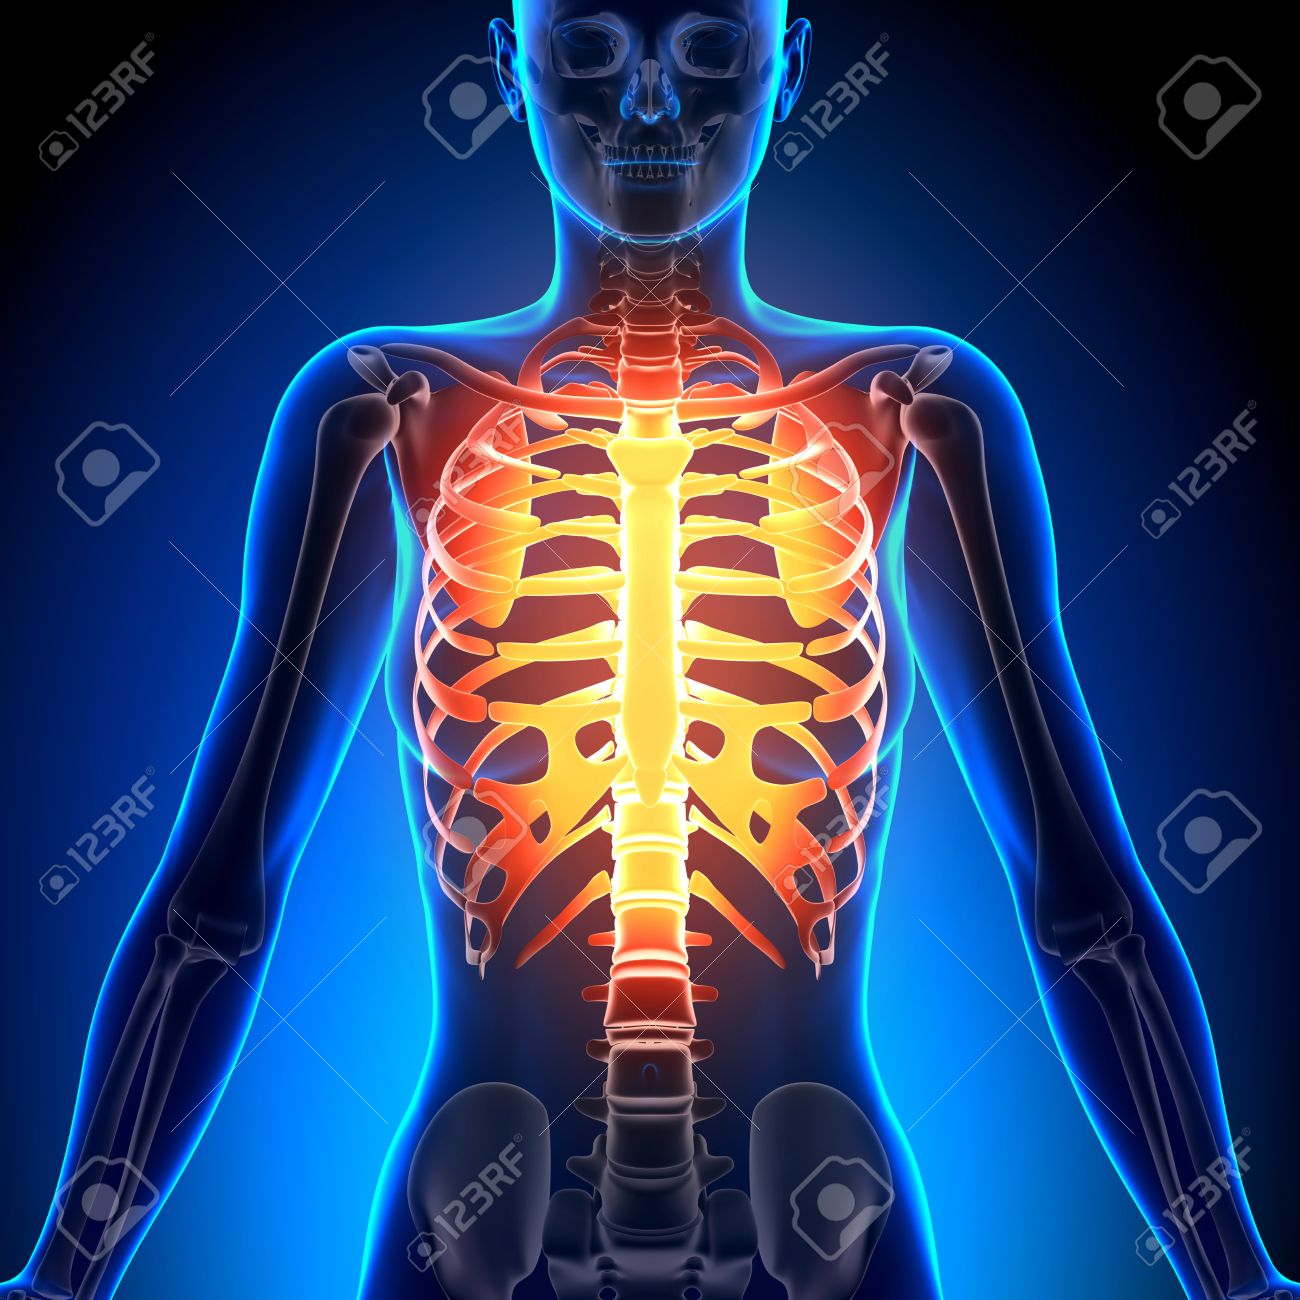 Female Rib Cage - Anatomy Bones Stock Photo, Picture And Royalty ...